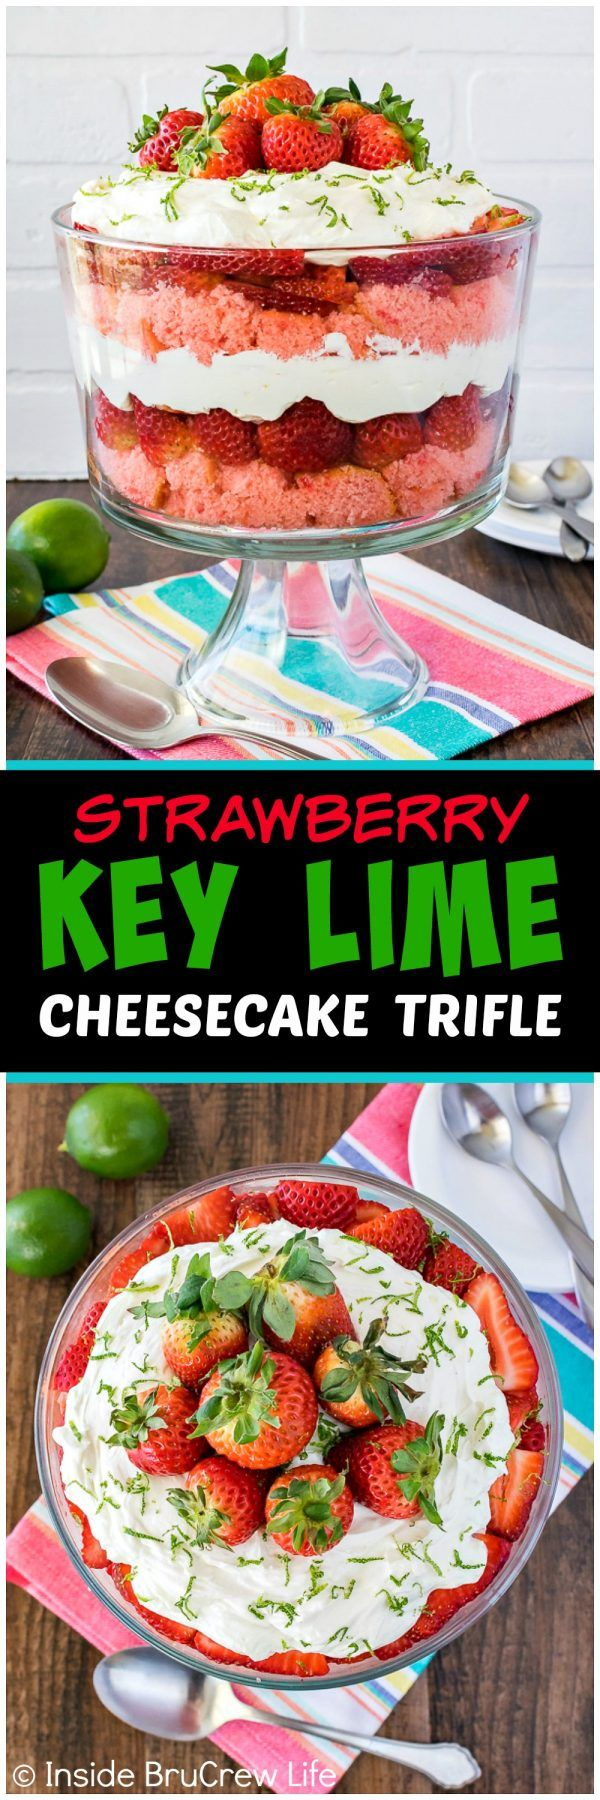 Strawberry Key Lime Cheesecake Trifle - layers of fresh fruit, cake, and no bake cheesecake in one large bowl makes an easy dessert! Great recipe for spring or summer dinner parties!